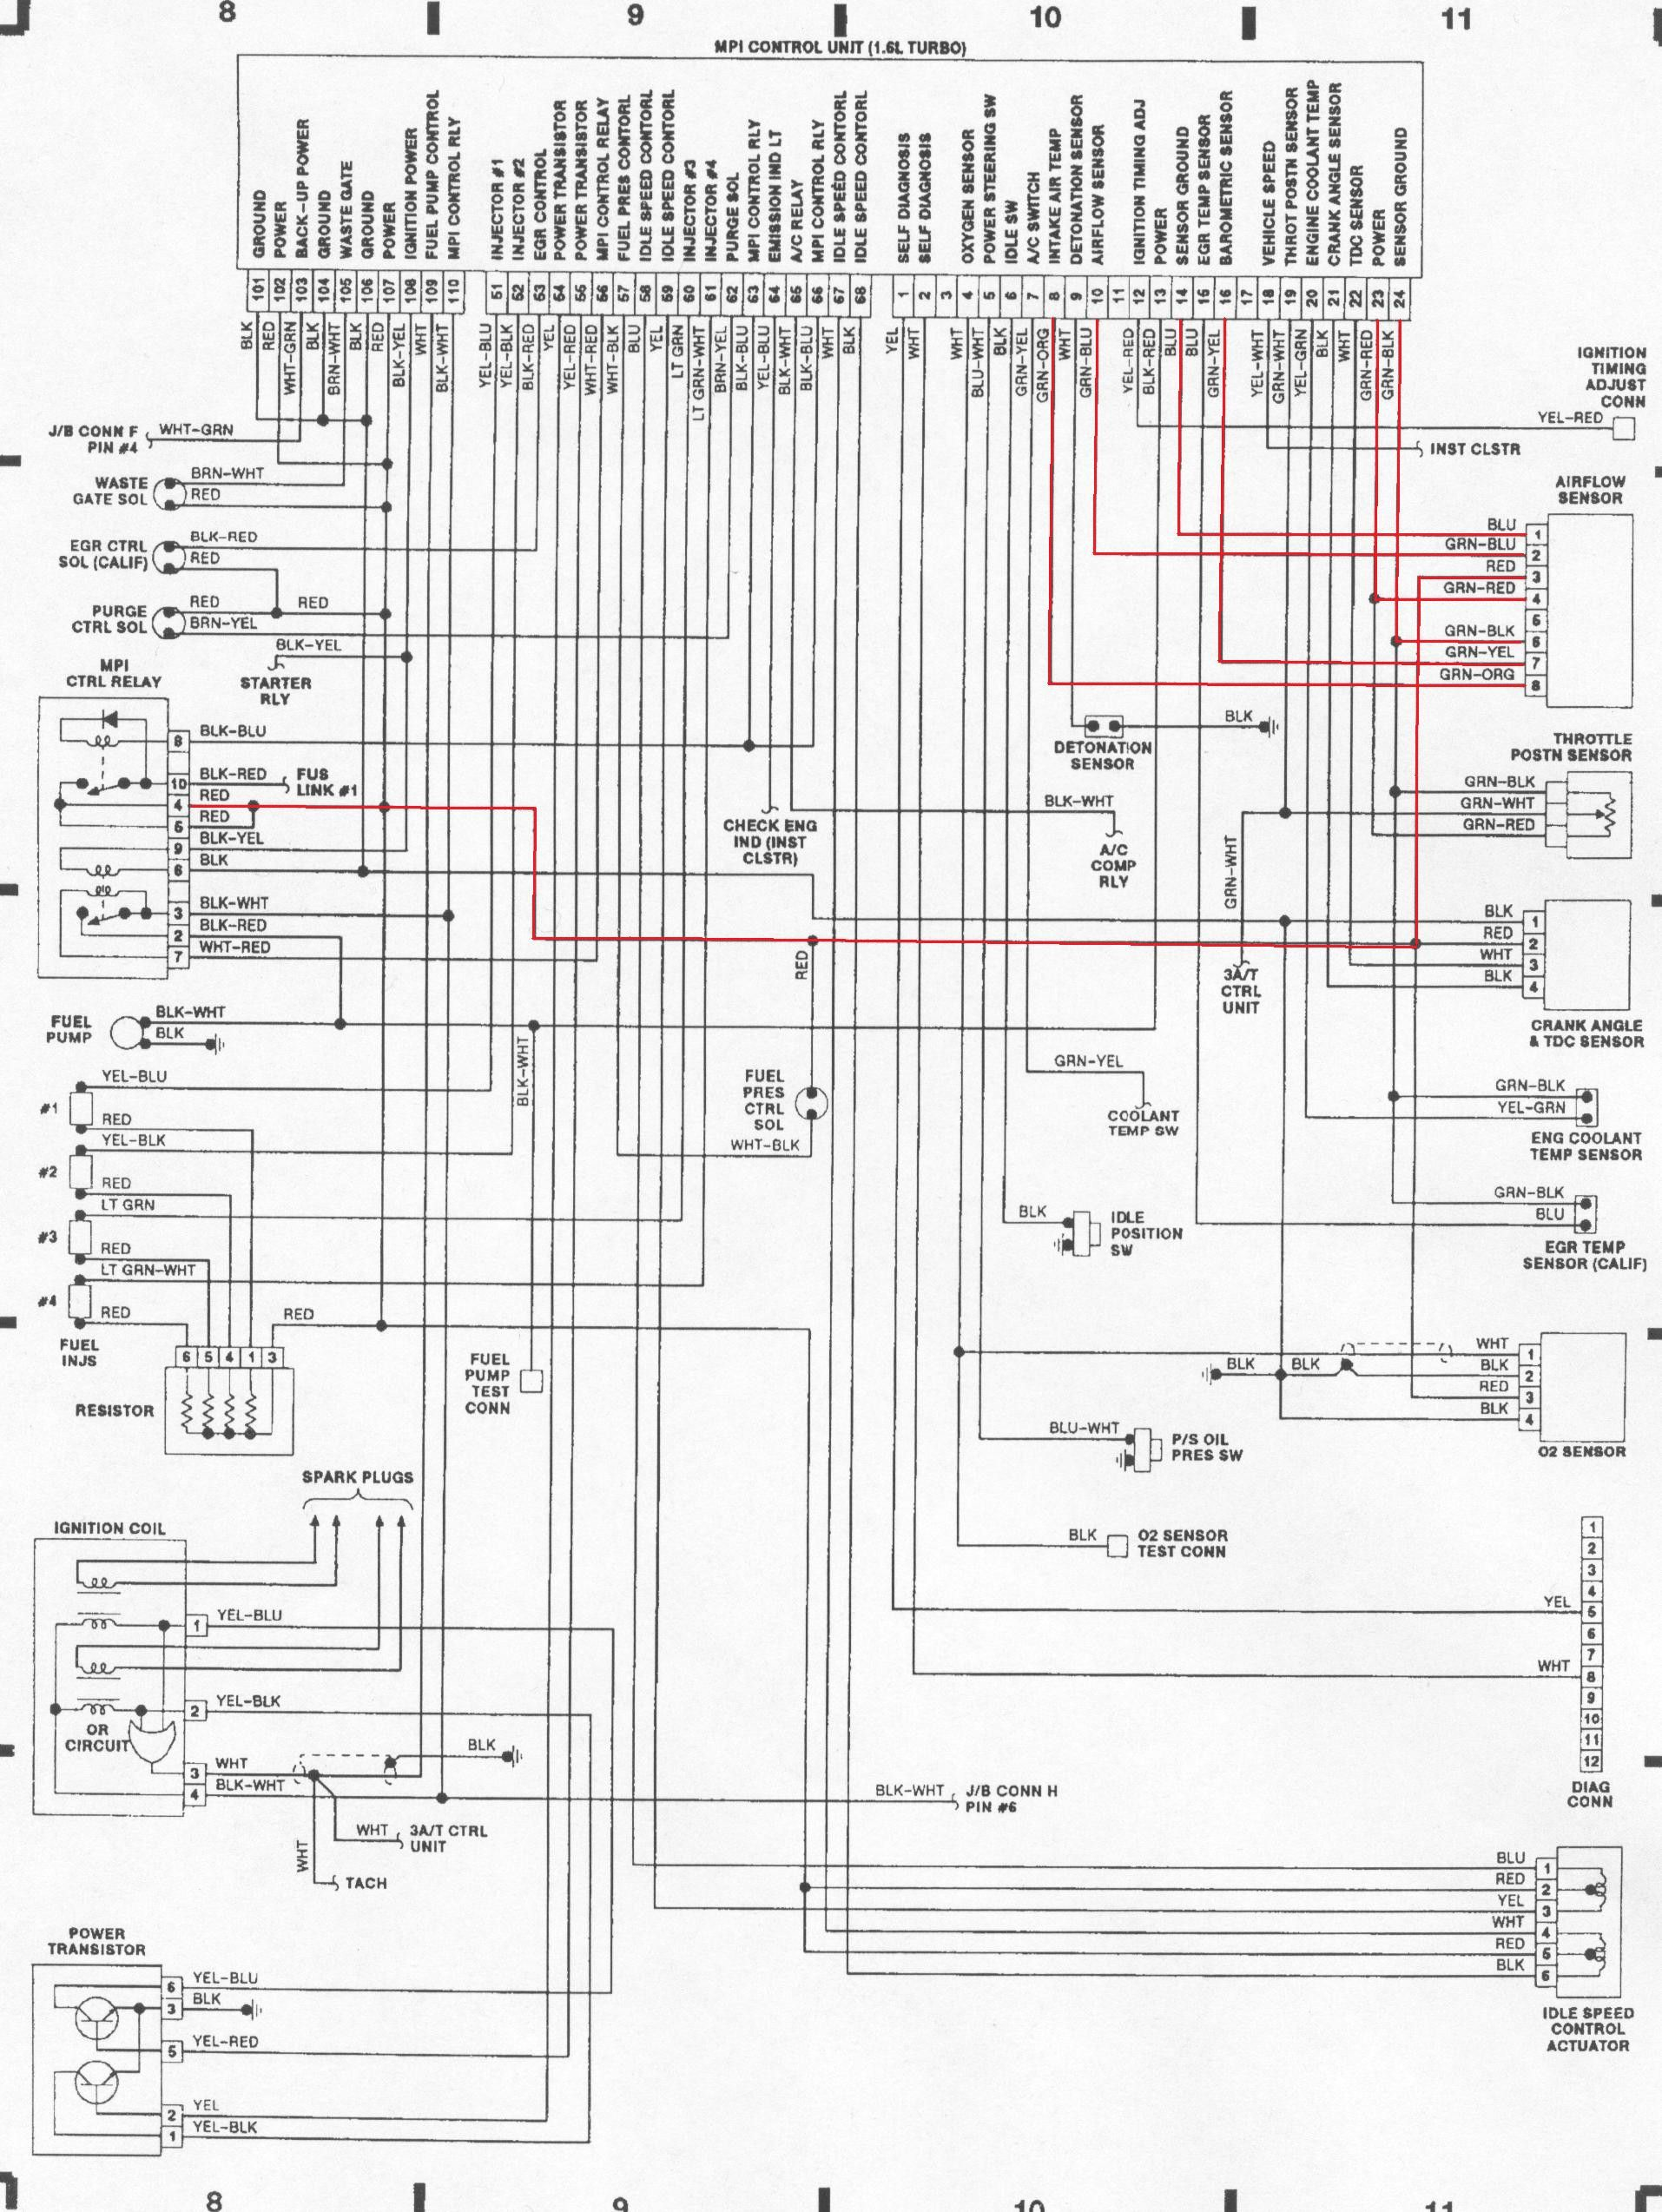 1998 Jeep Cherokee Wiring Diagrams Pdf: Wiring Diagram 4g15 Pdf Virtual Fretboard Inside Mitsubishi Mirage rh:pinterest.com,Design